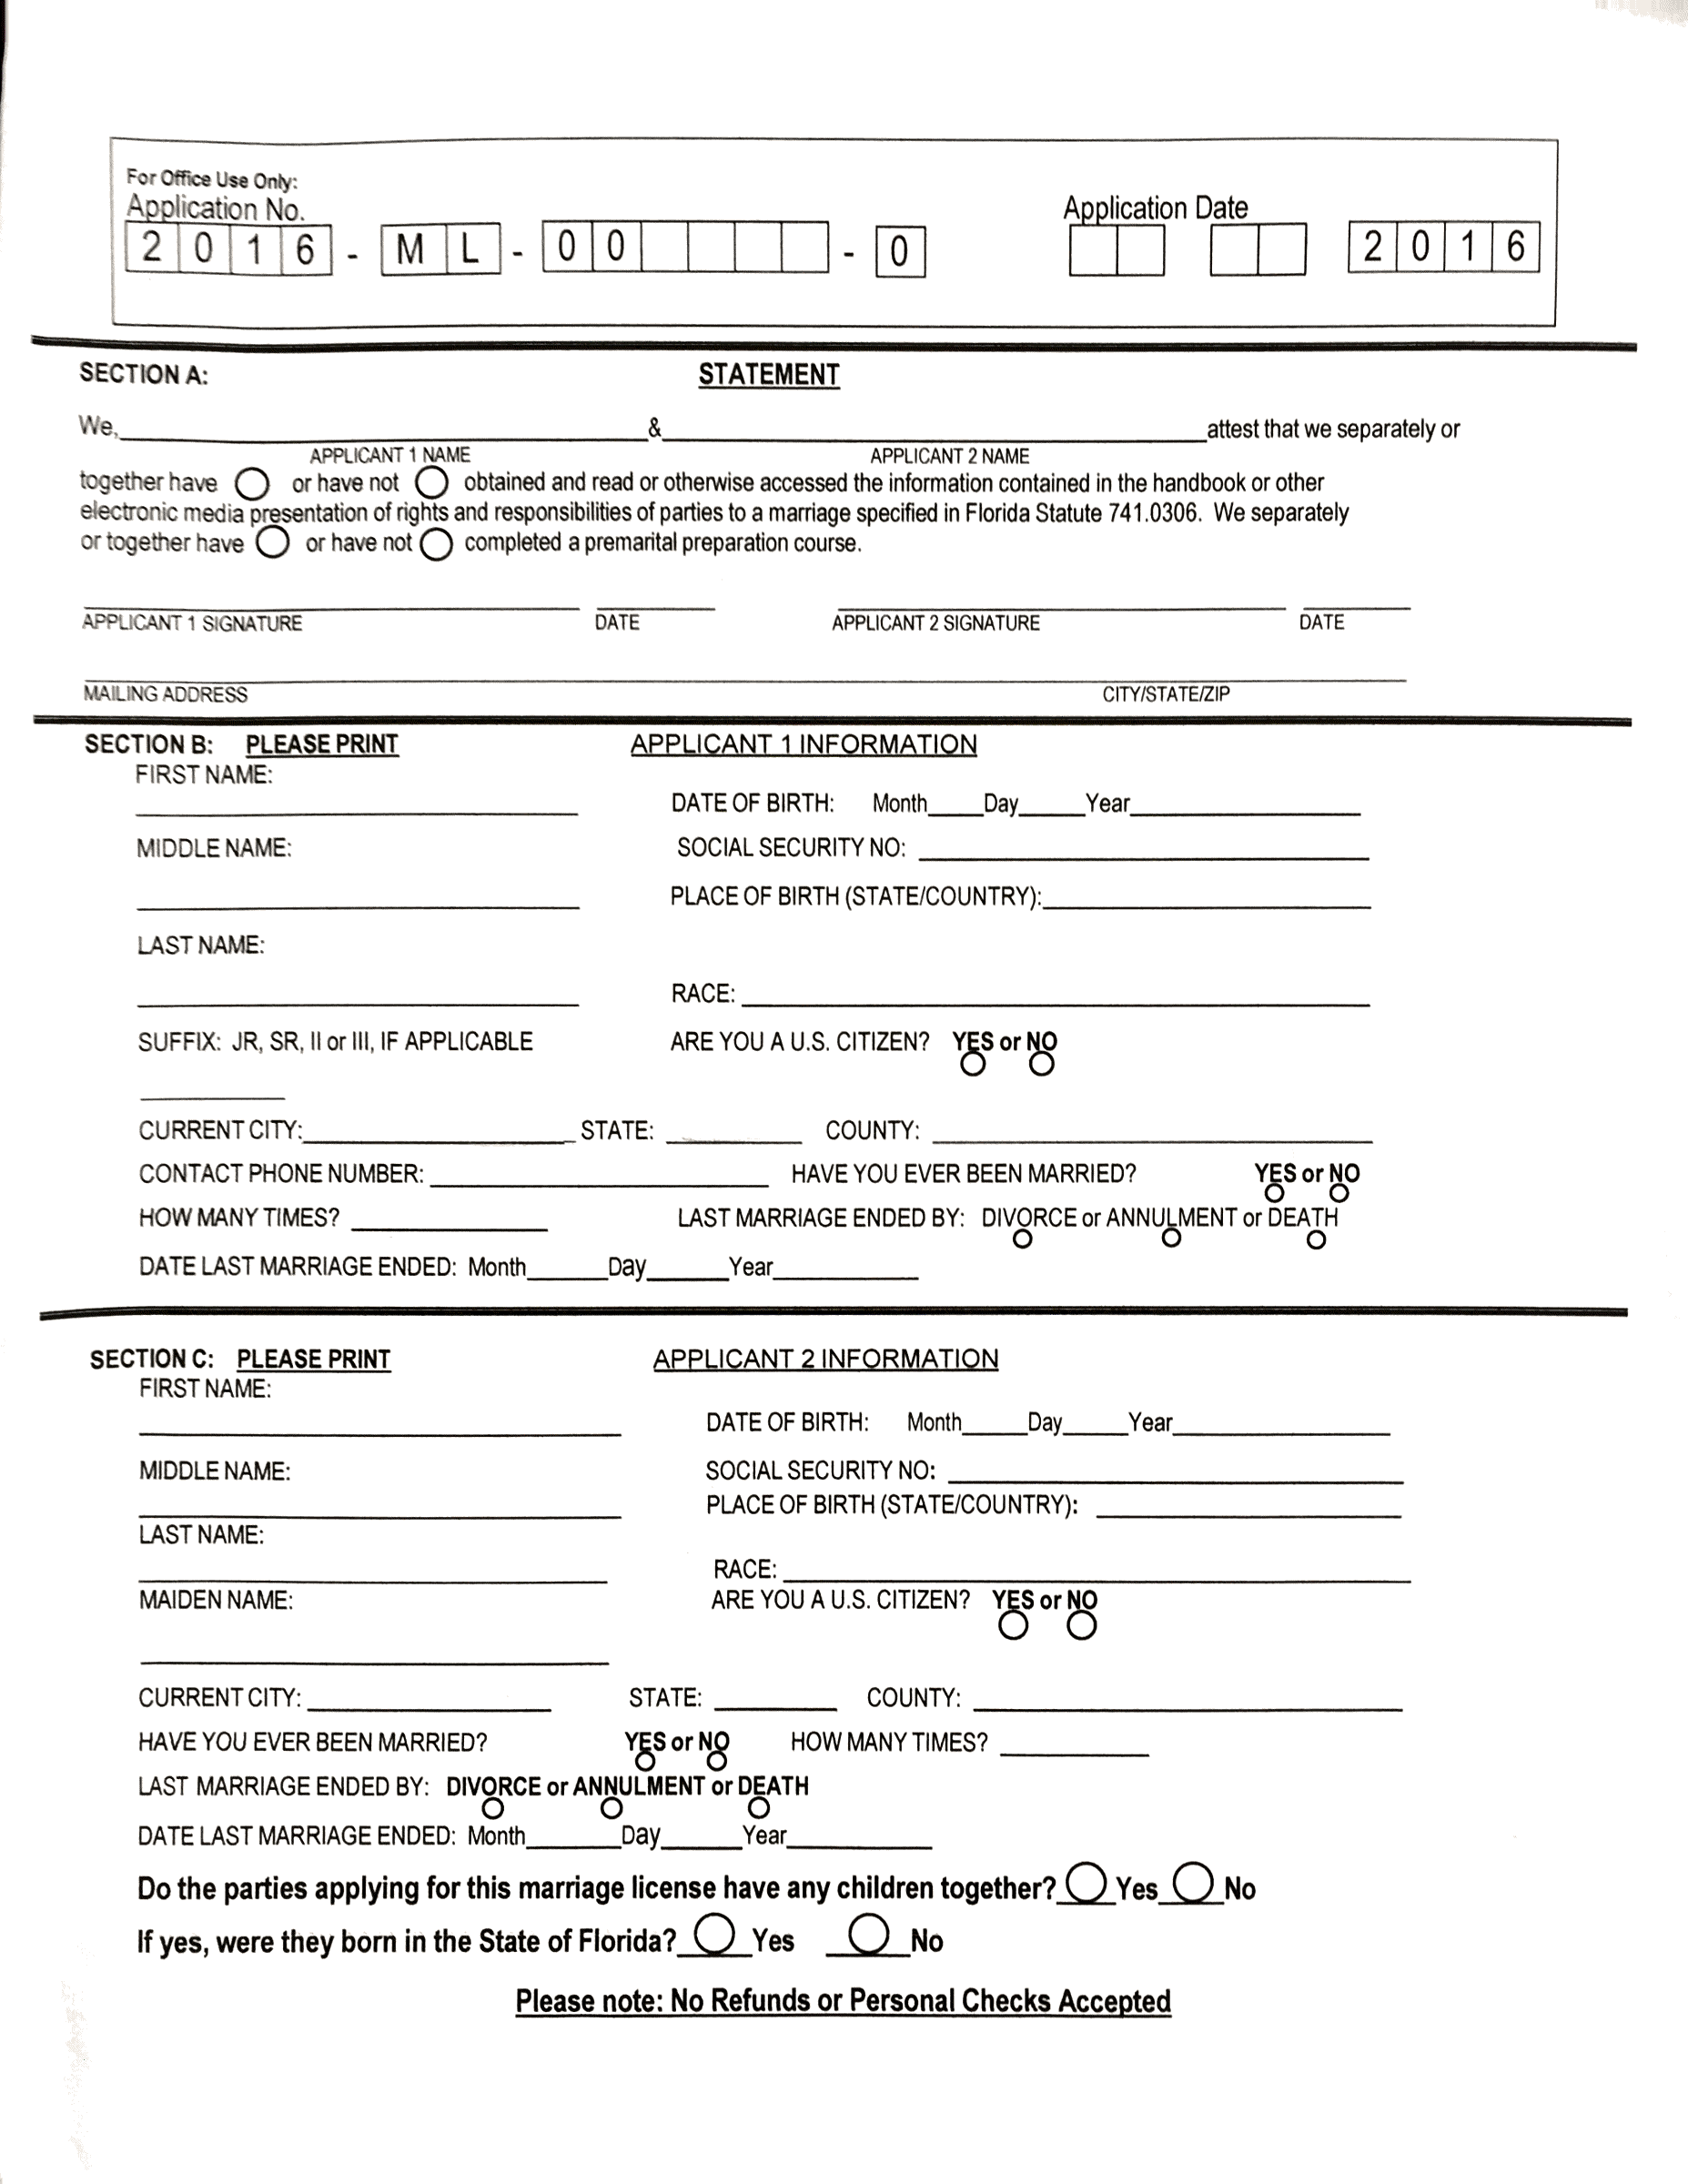 Marriage license license scannable document on nov 1 2016 31001 pm xflitez Gallery